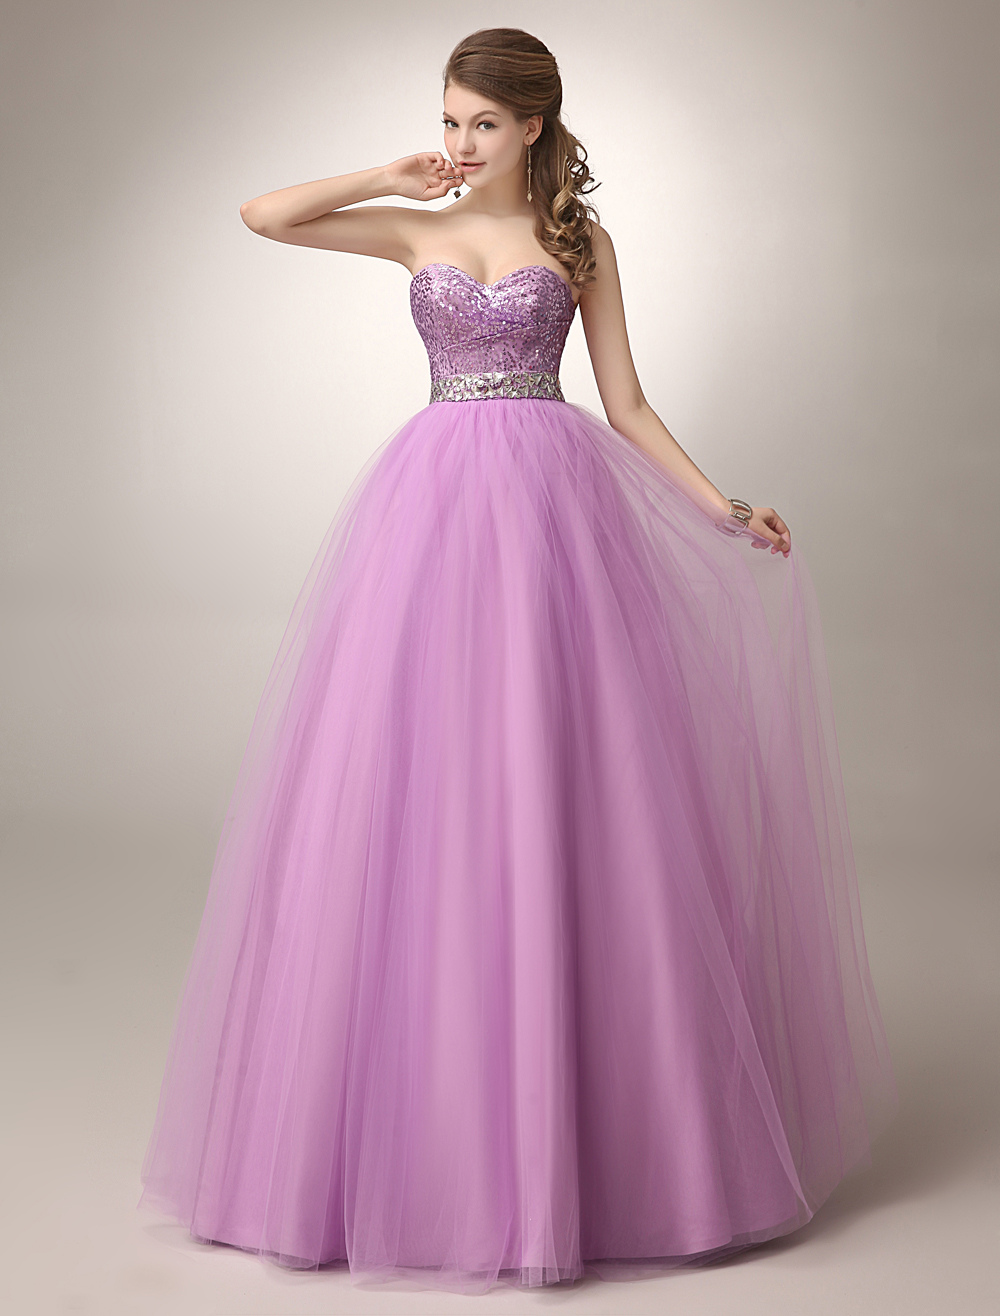 Fuchsia Pink Prom Dress Sequin Tulle Ball Gown Sweetheart Beaded ...